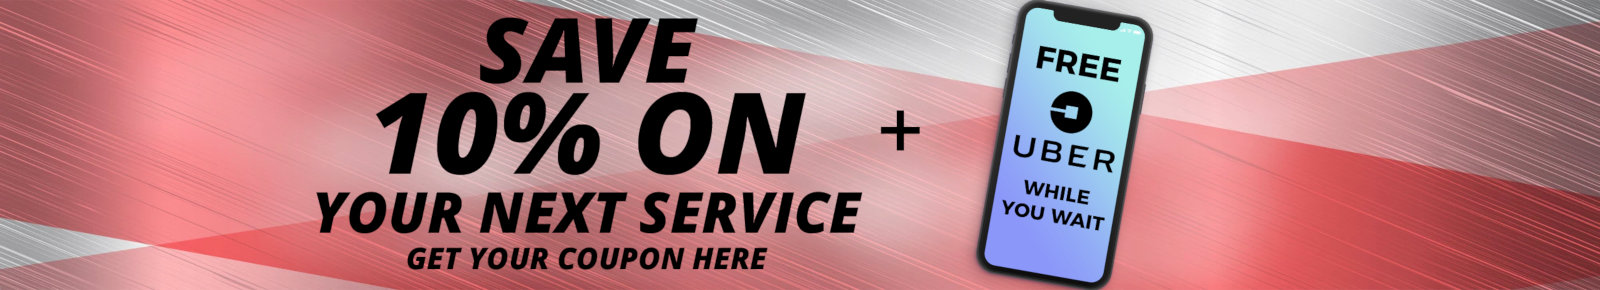 save 10% on your next service!